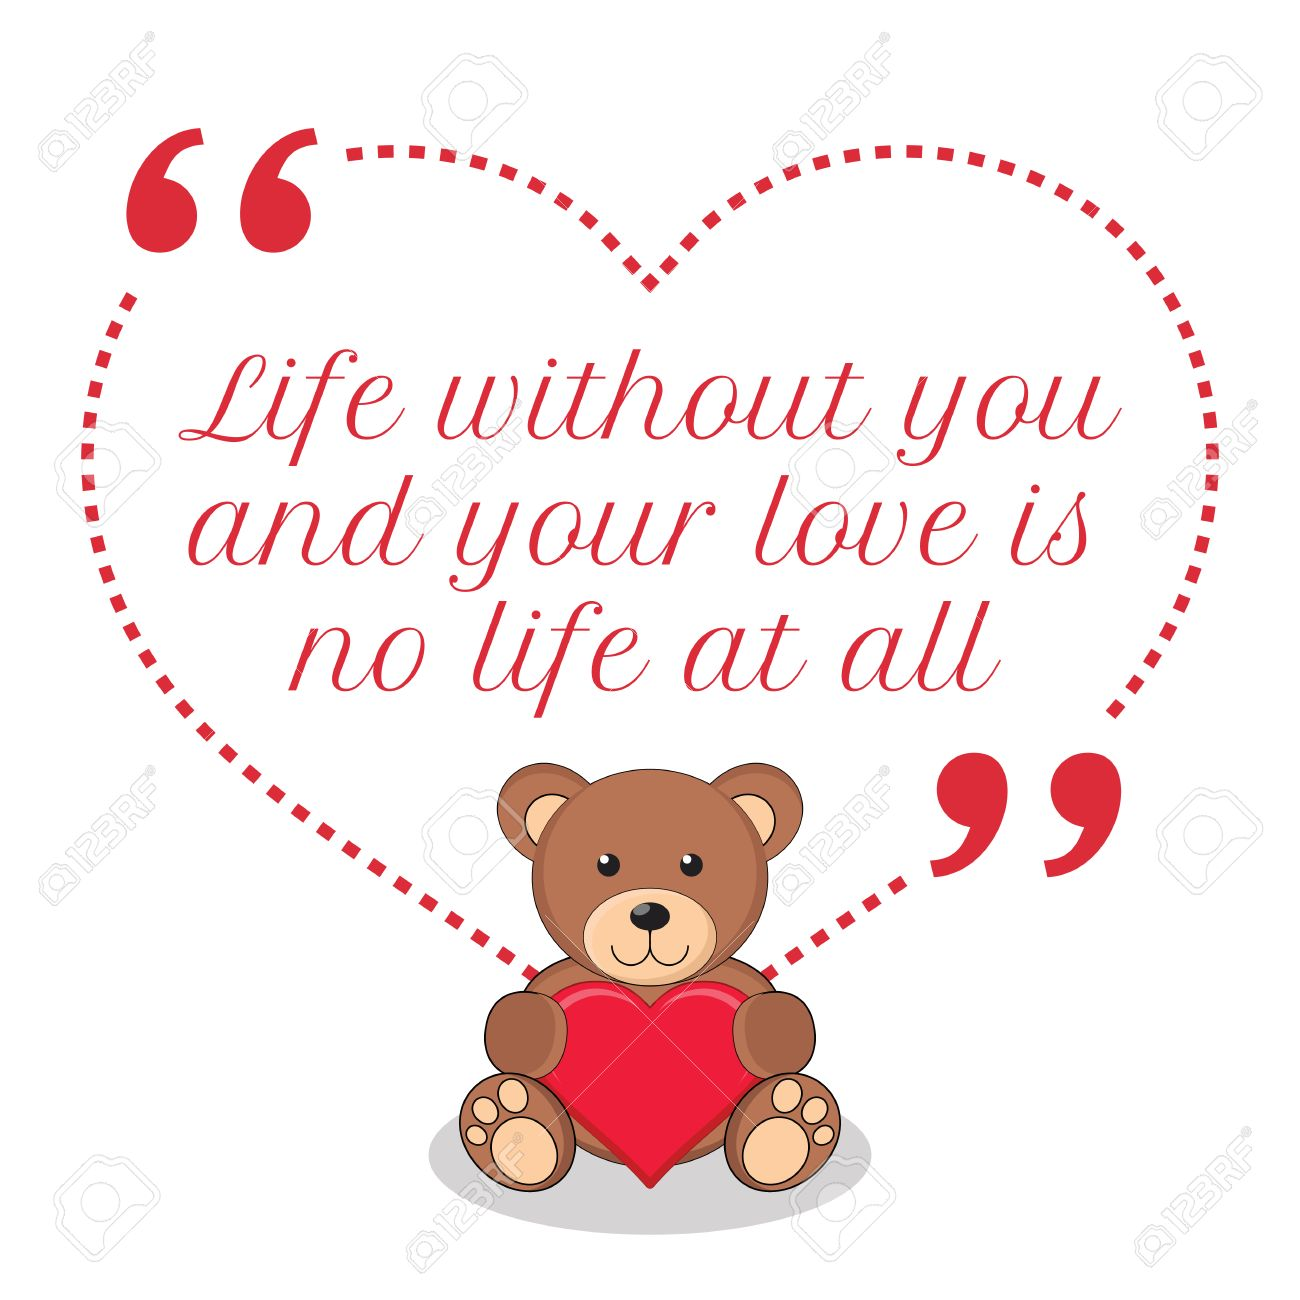 Inspirational love quote. Life without you and your love is no life at all. Simple cute design.